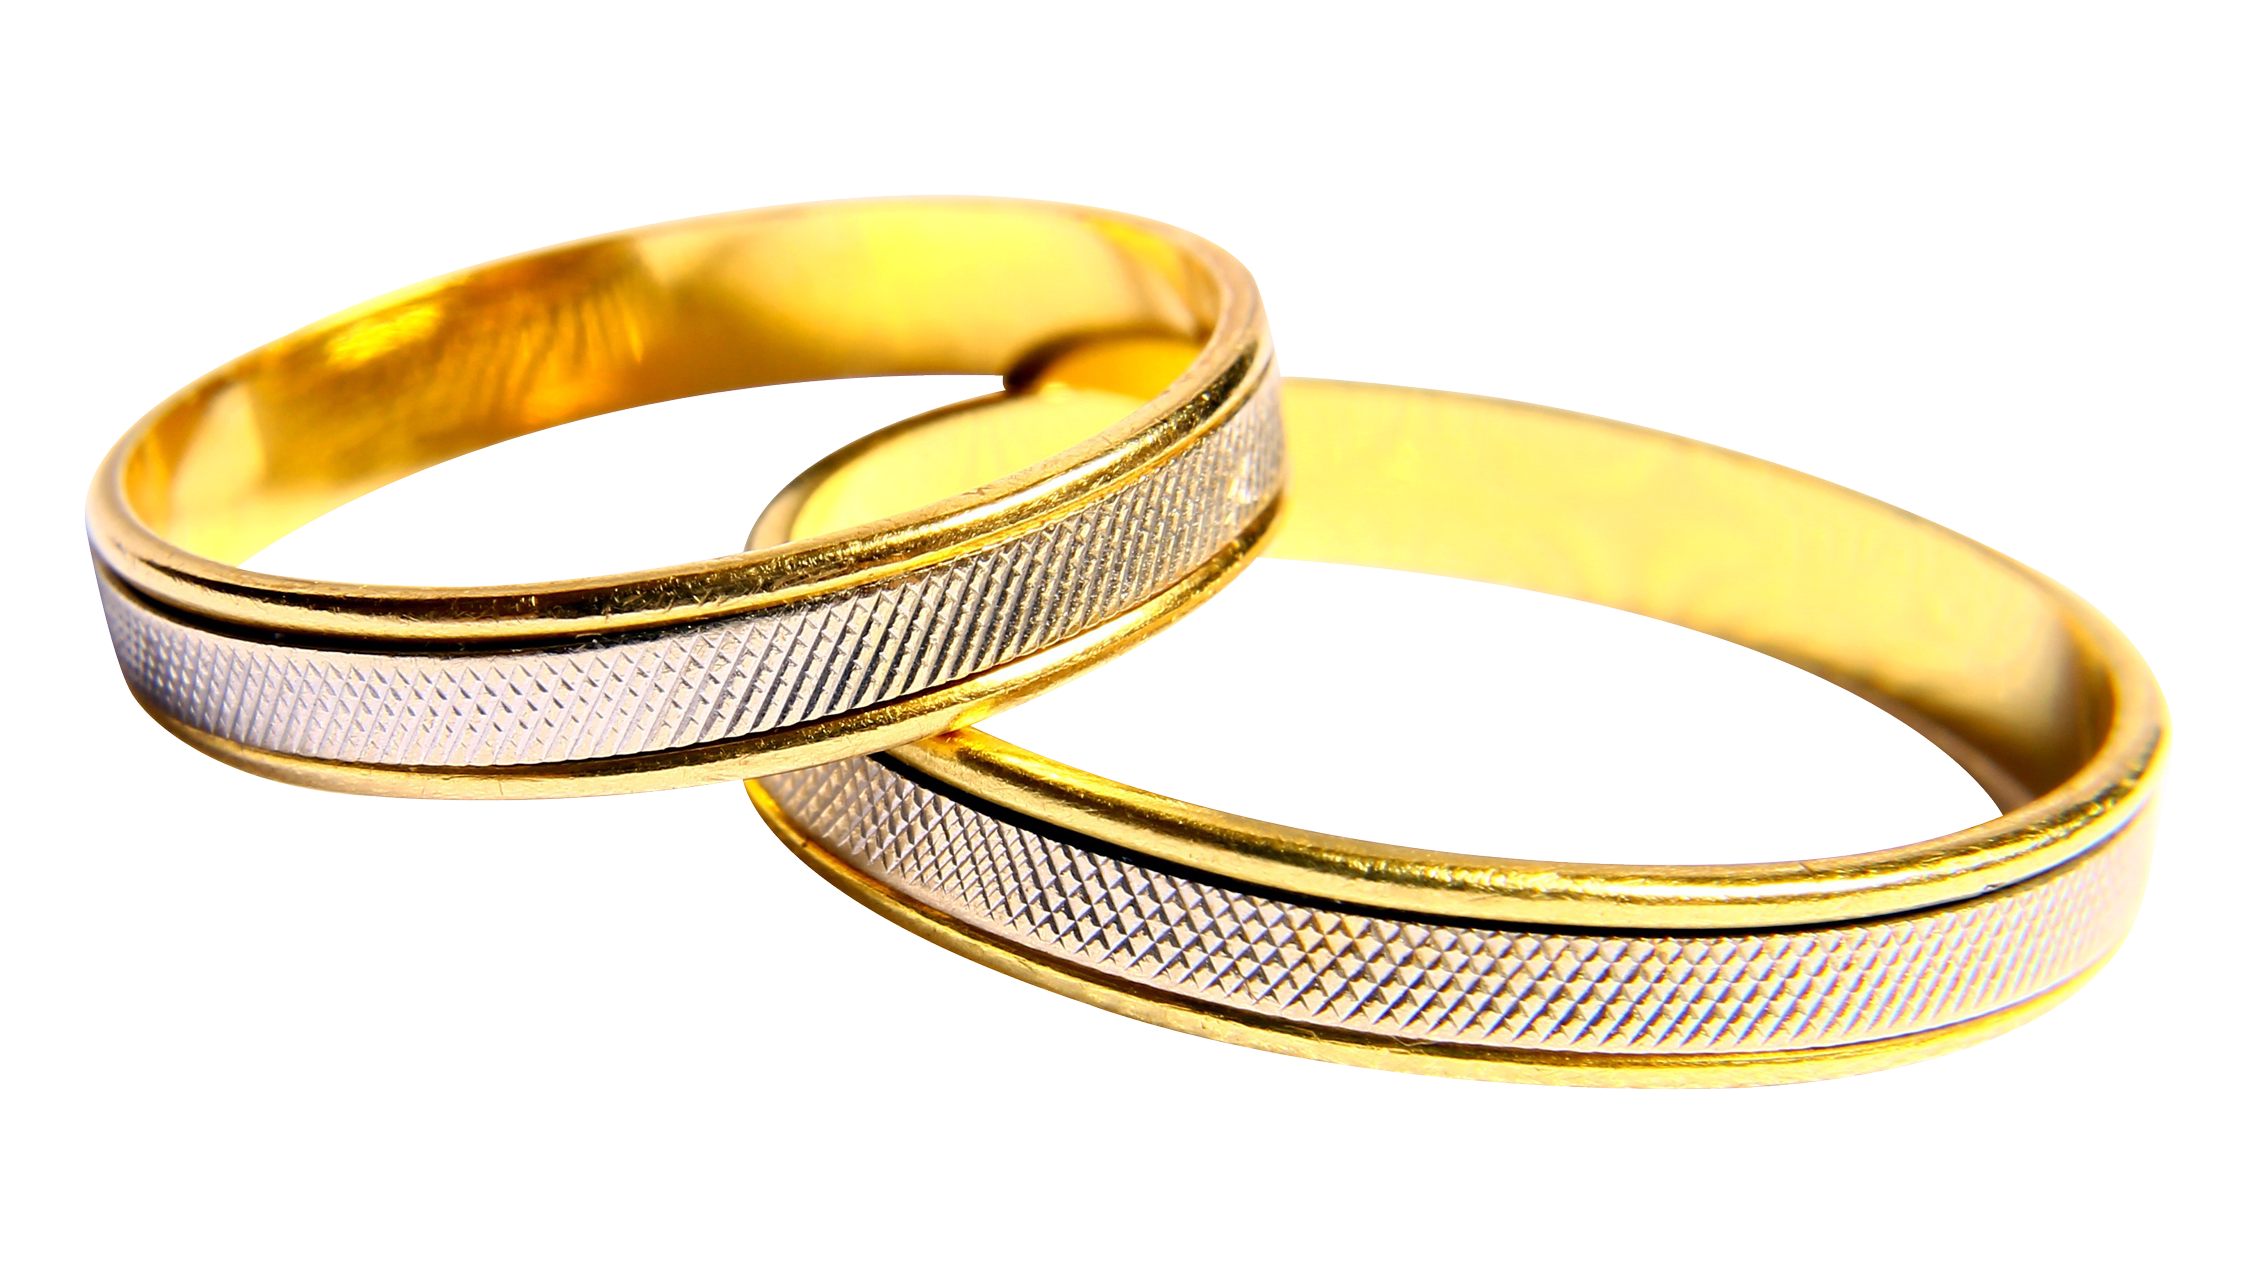 Gold embroidered wedding ring png #45269.